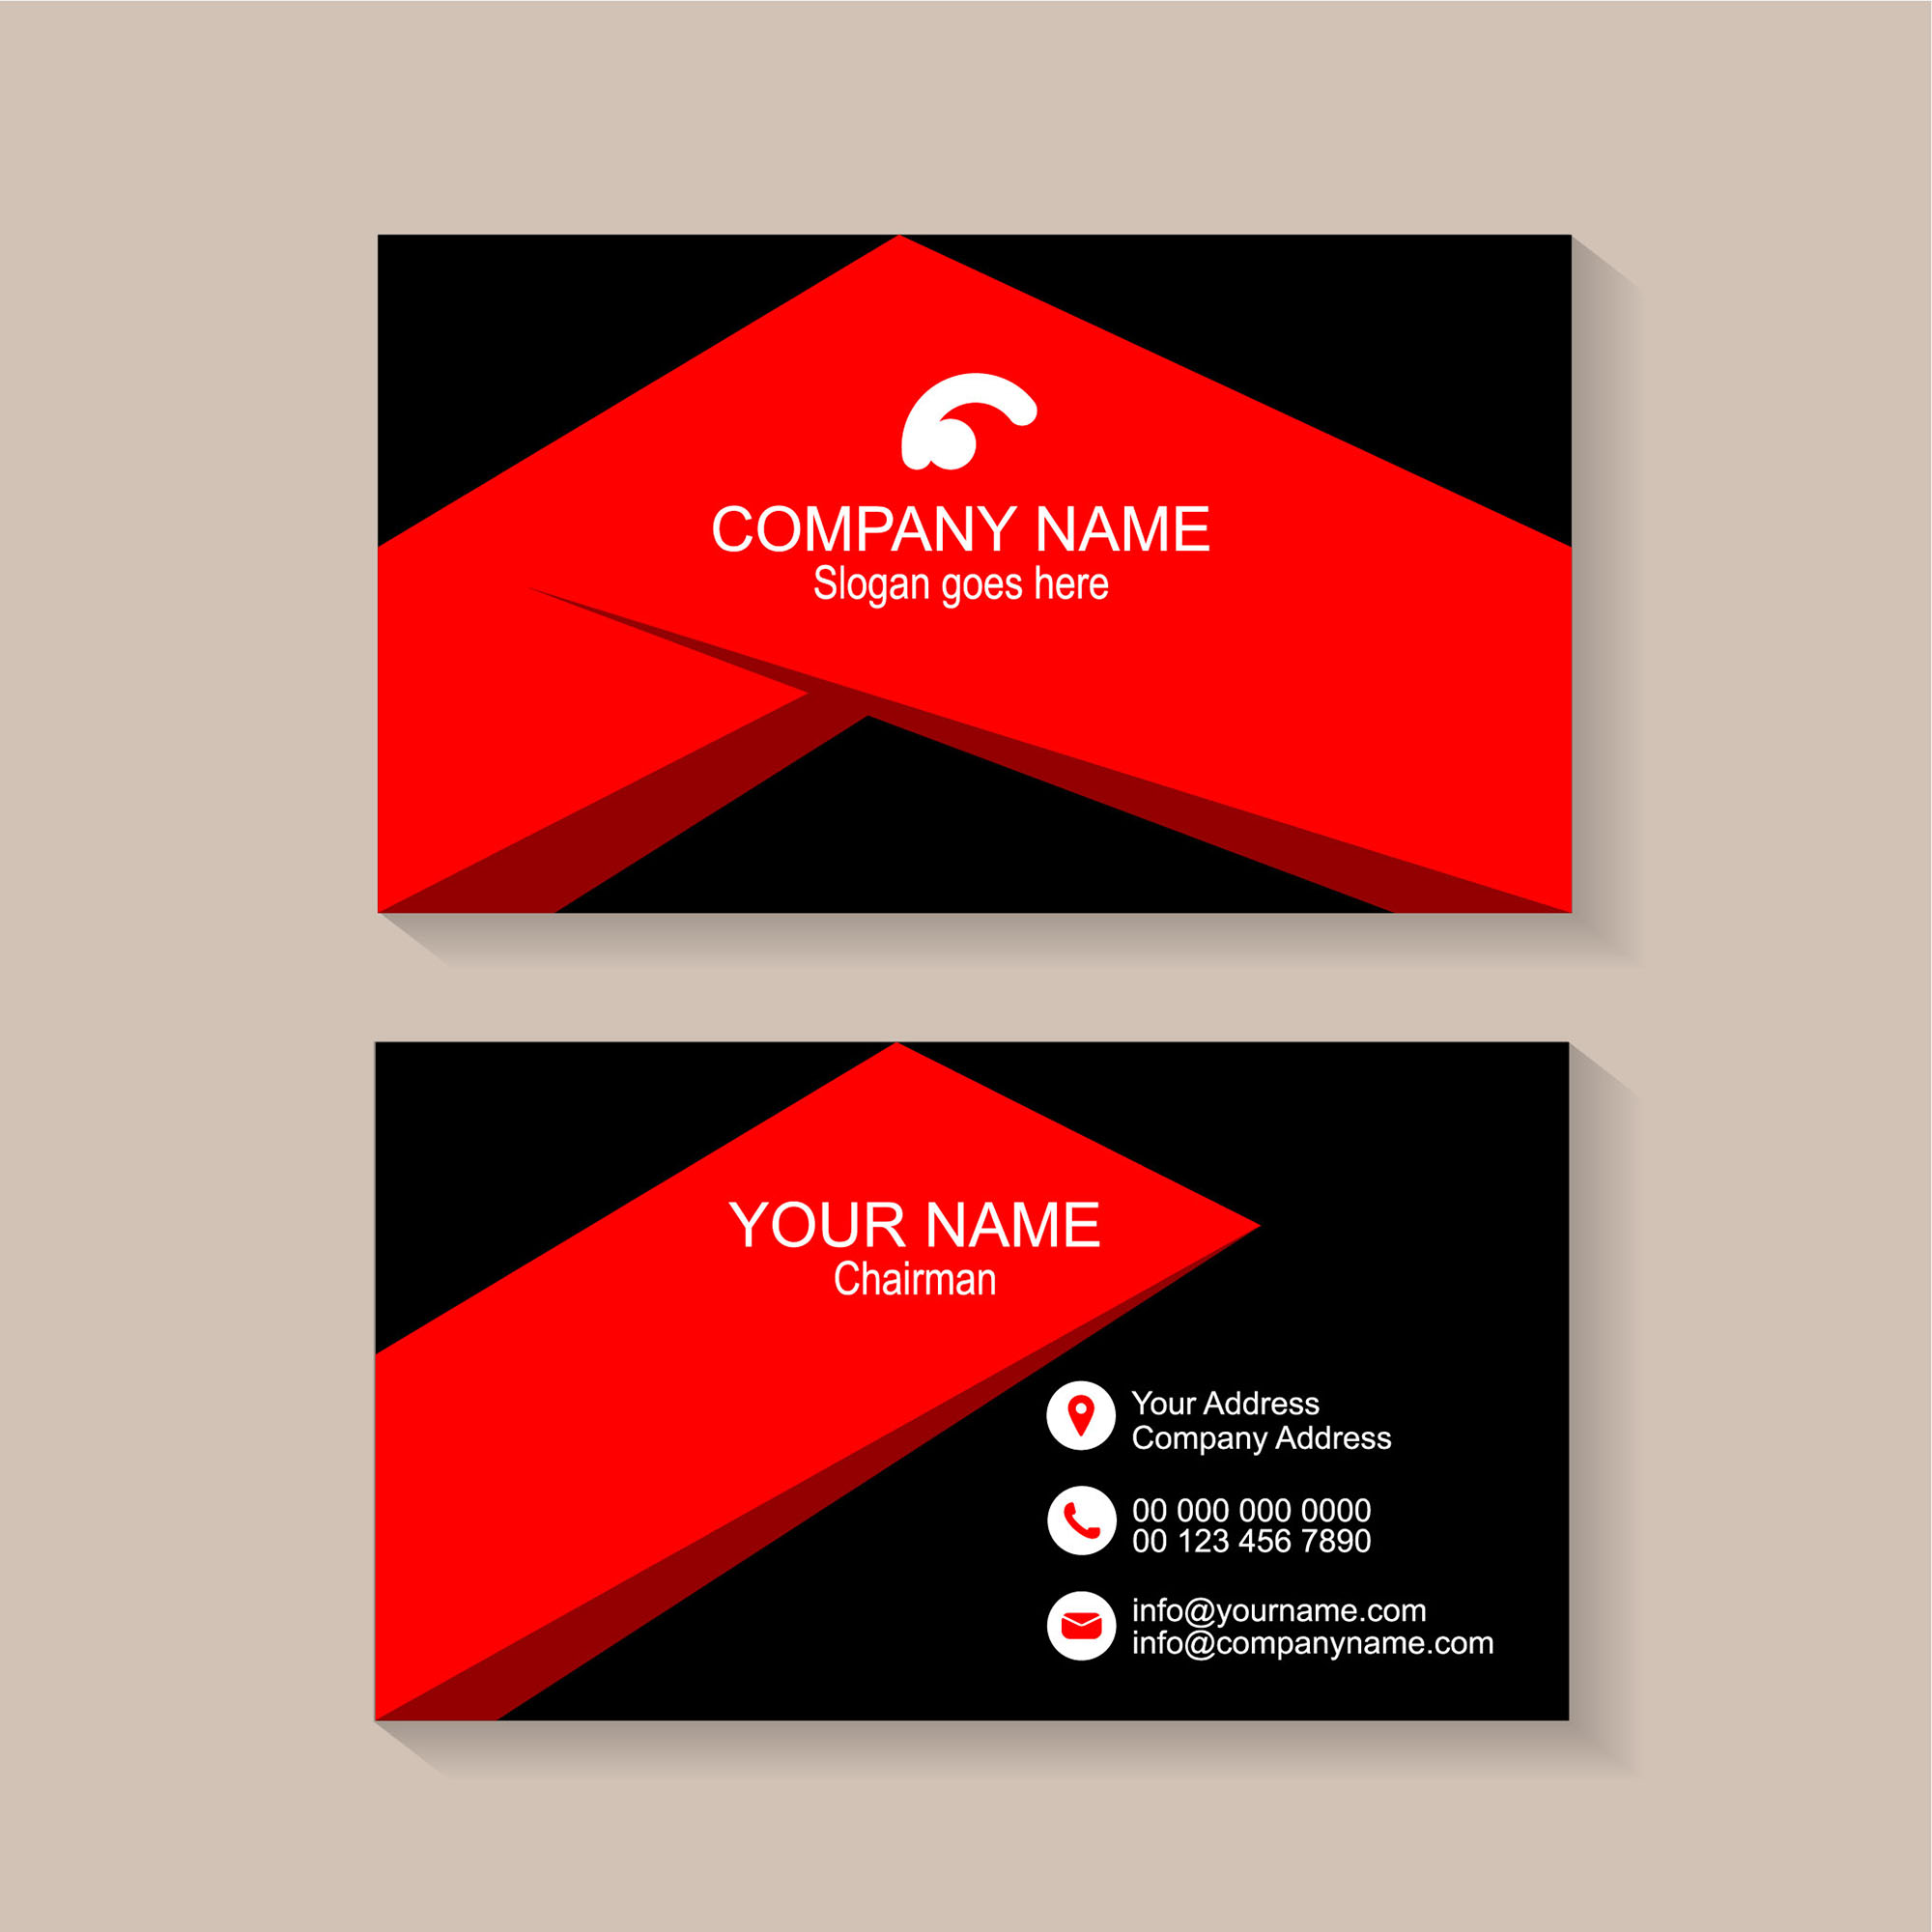 Business card template design free download wisxi business card business cards business card design business card template design templates modern business card design accmission